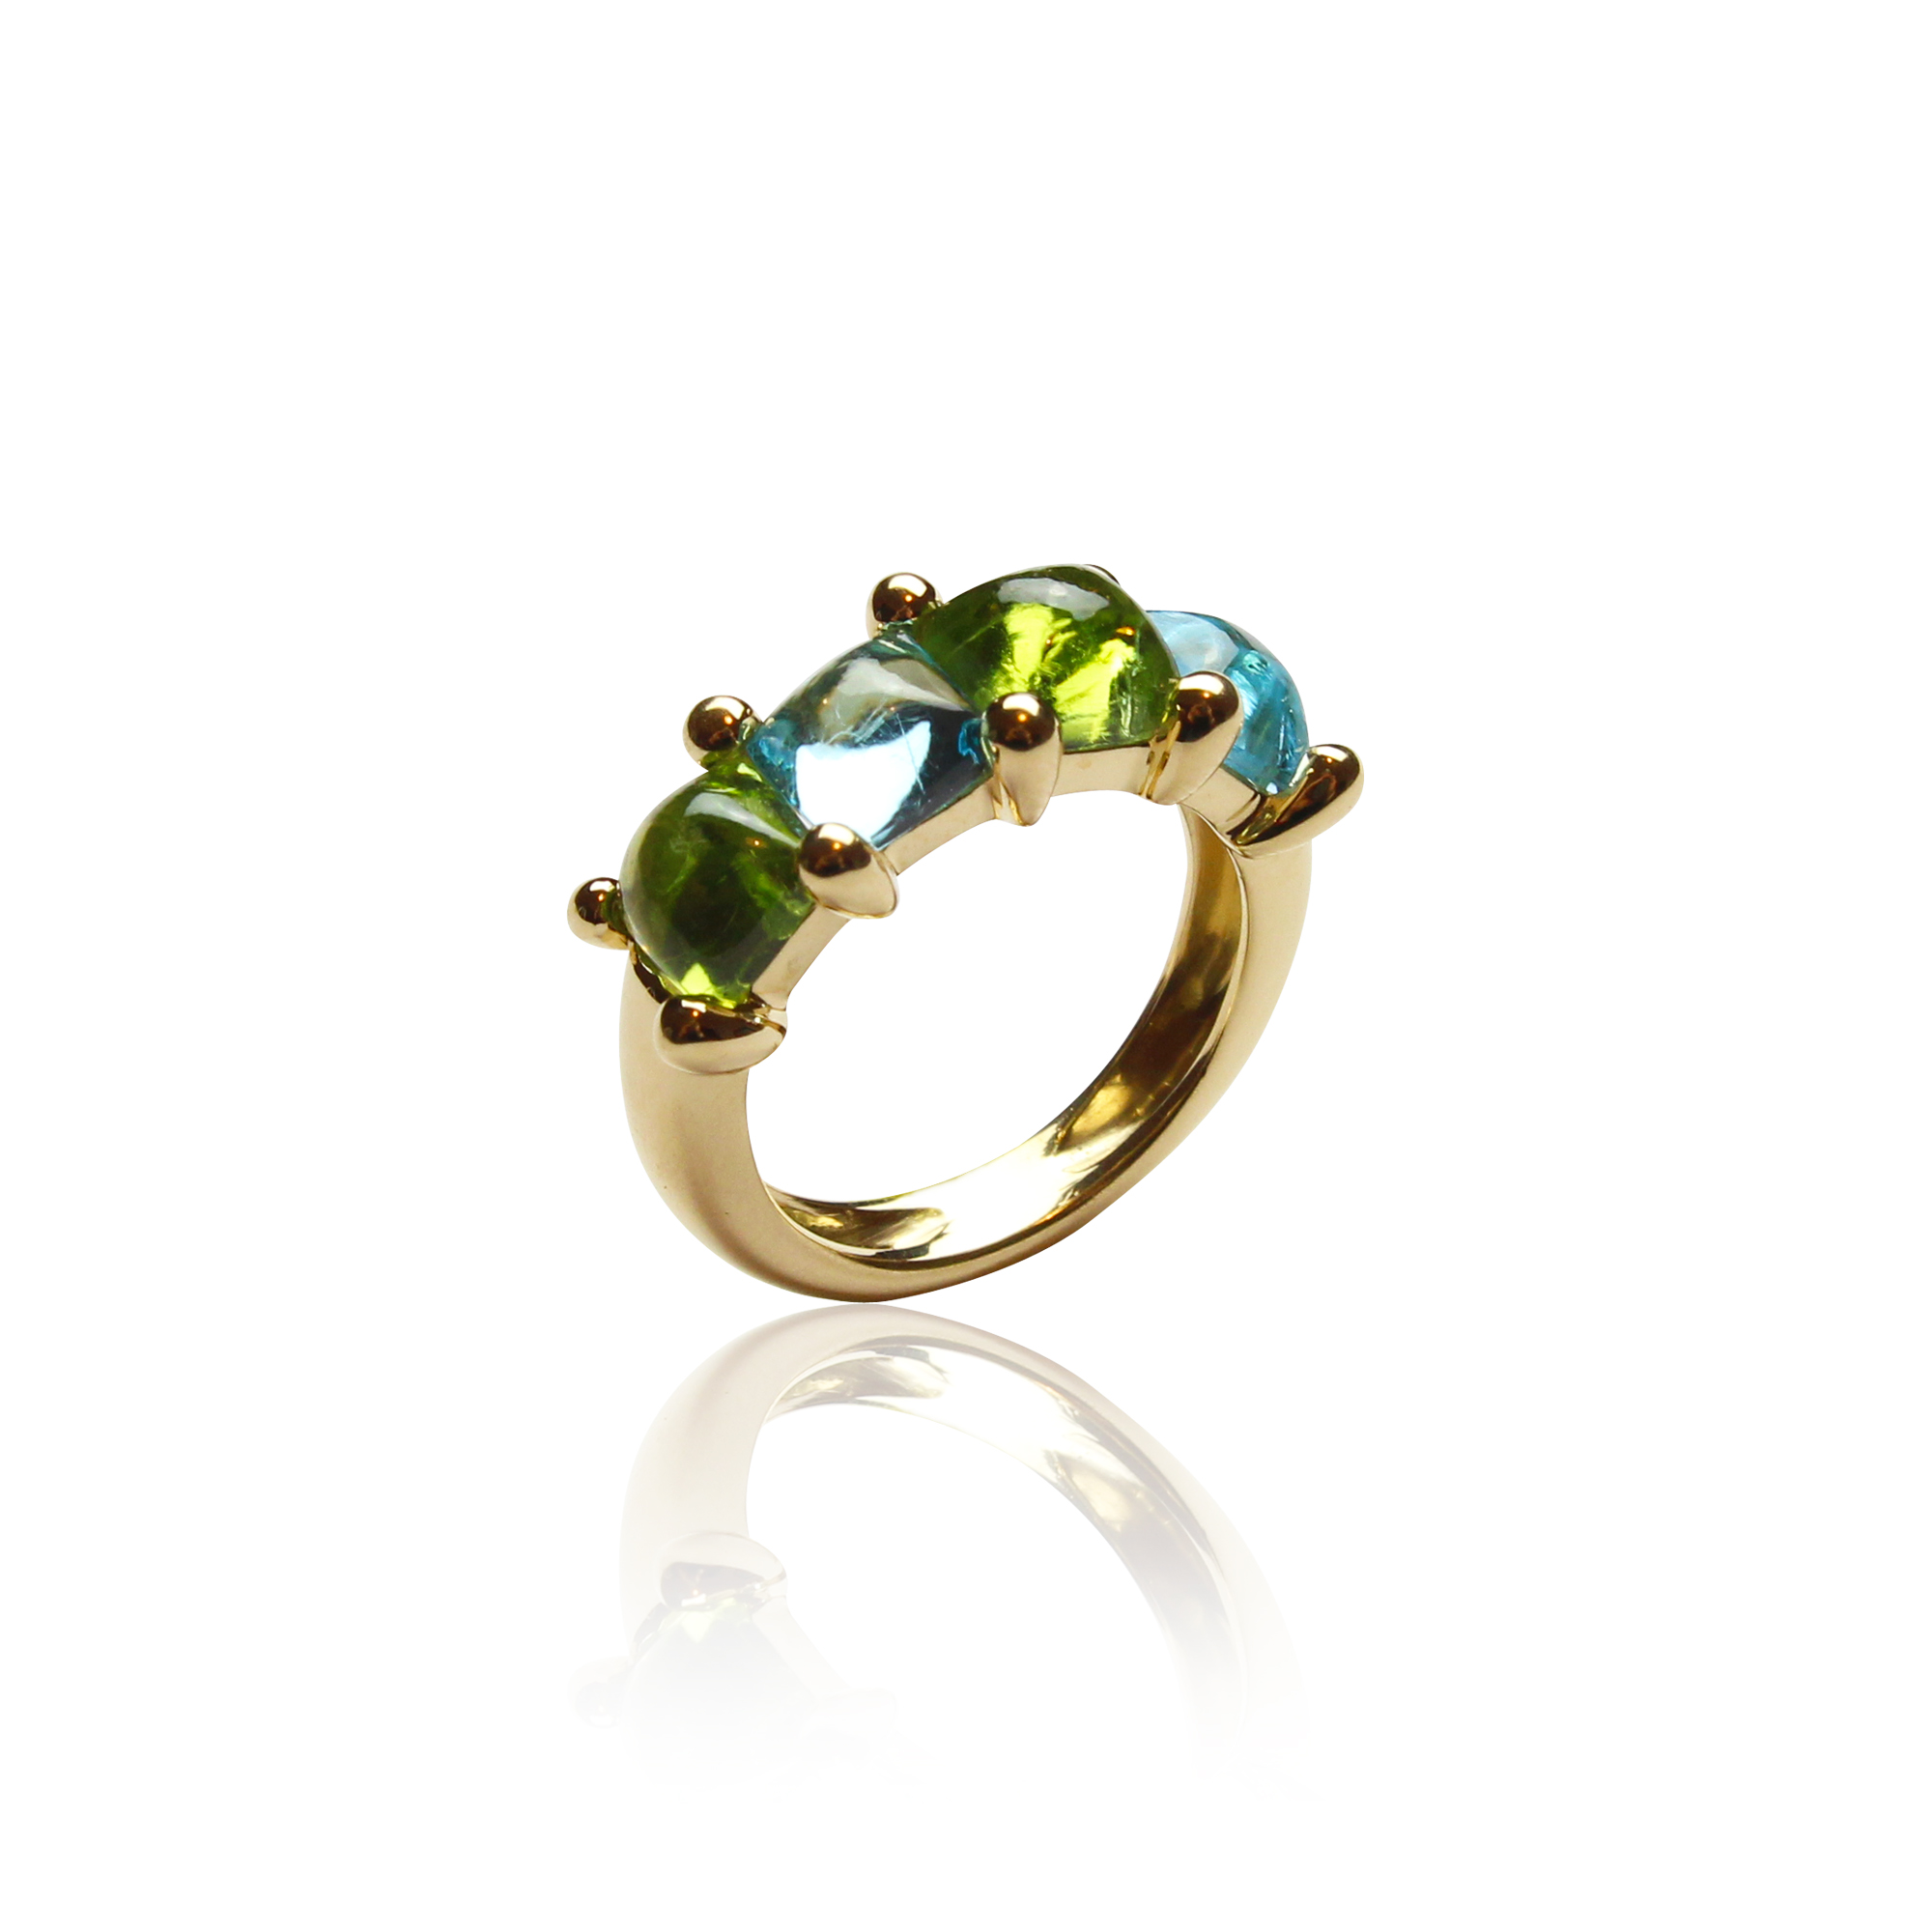 ring arcobaleno in yellow gold 18 carat with peridot's and blue topaz